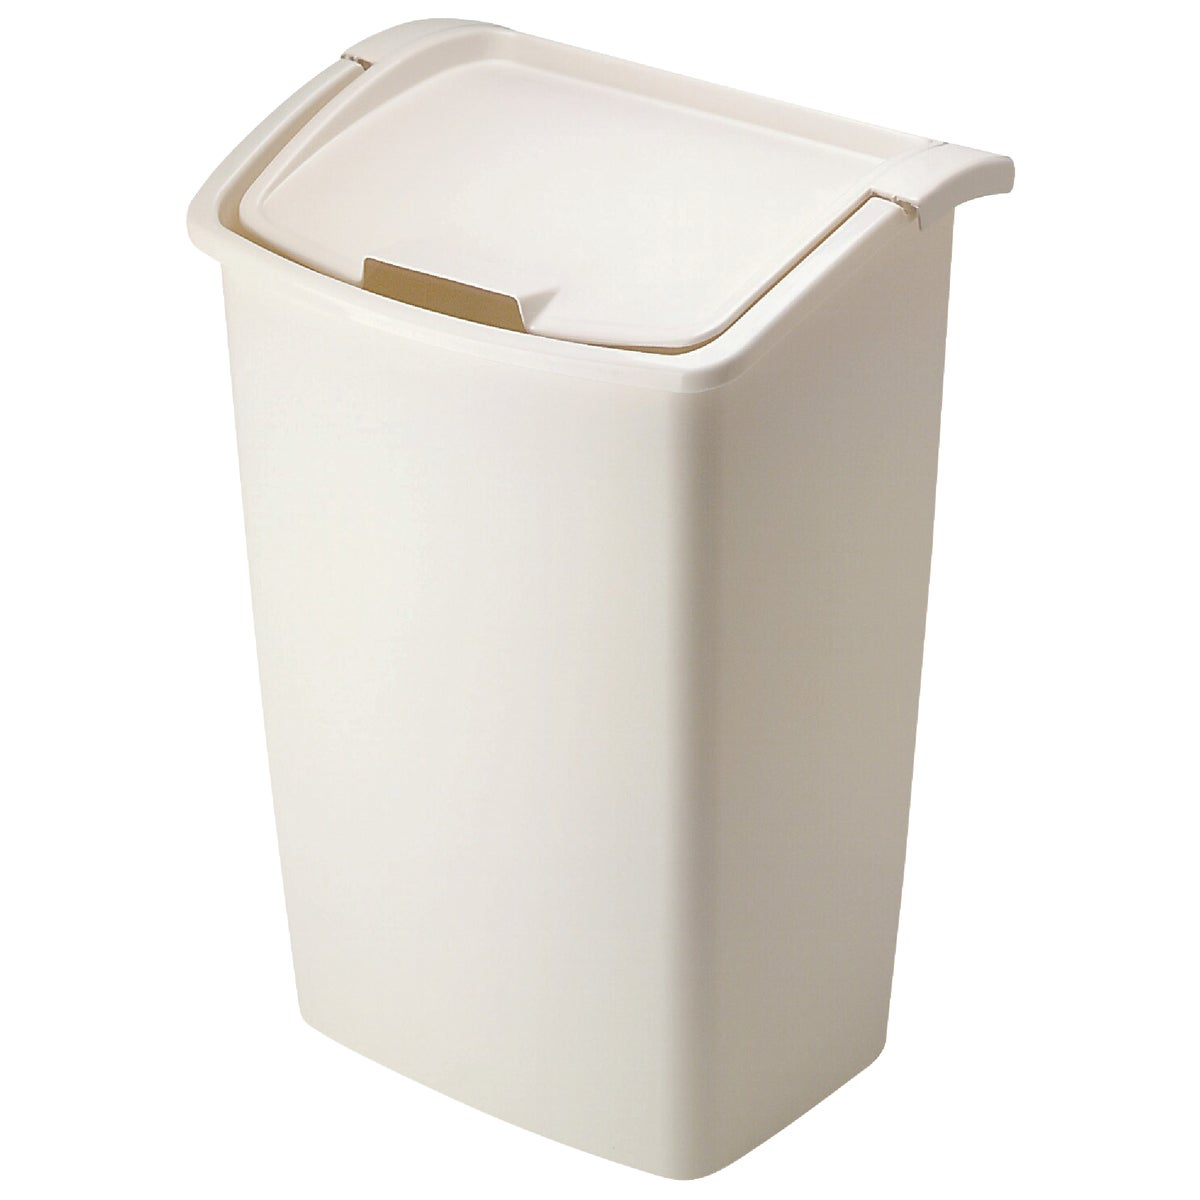 42QT BISQUE WASTEBASKET - 280300-BISQU by Rubbermaid Home